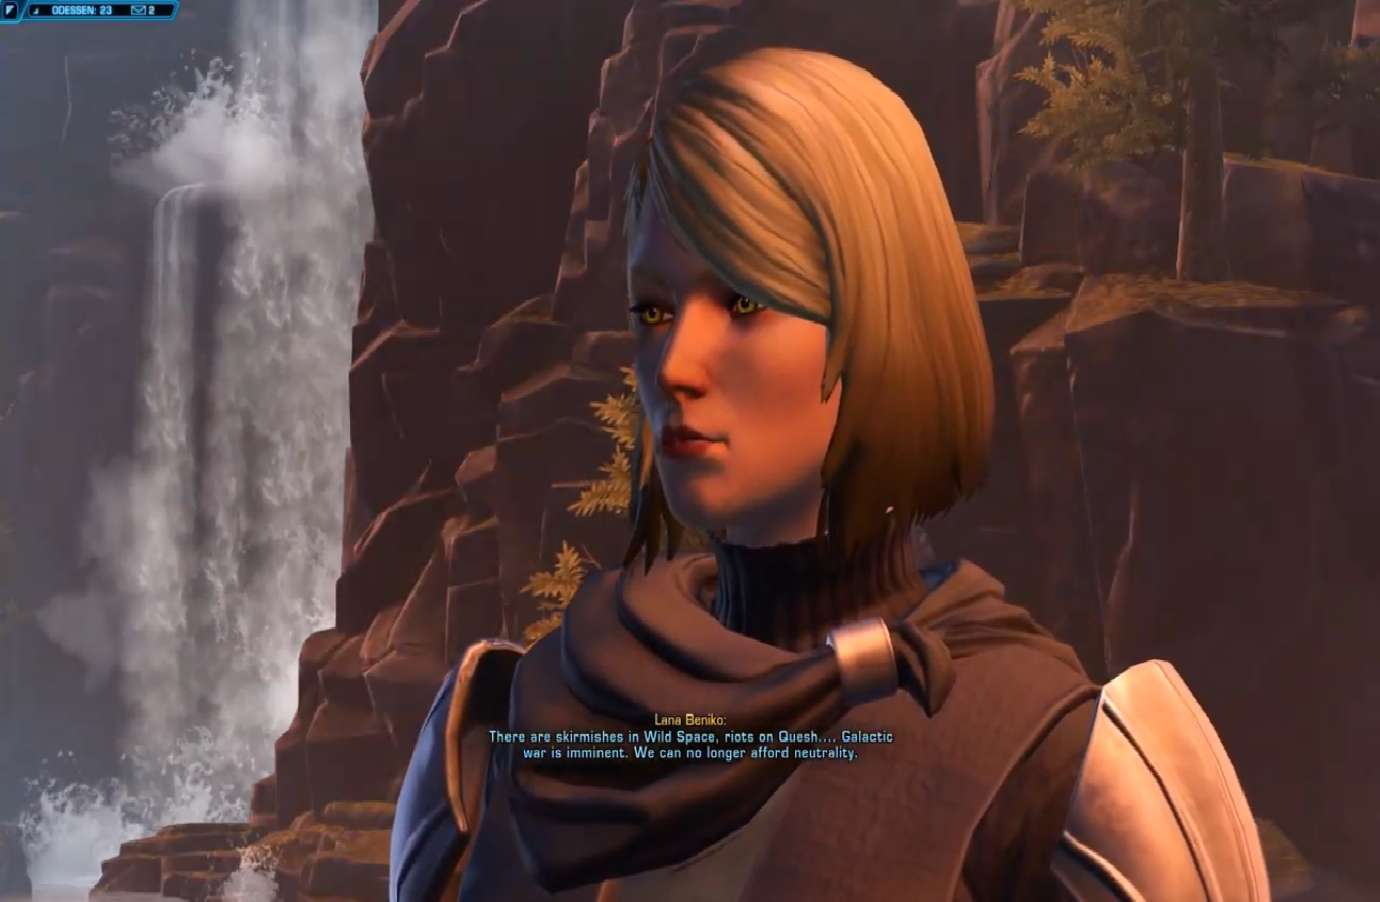 Star Wars The Old Republic Releases Patch 6.1a Which Tells Of Multiple Fixes To Existing Content